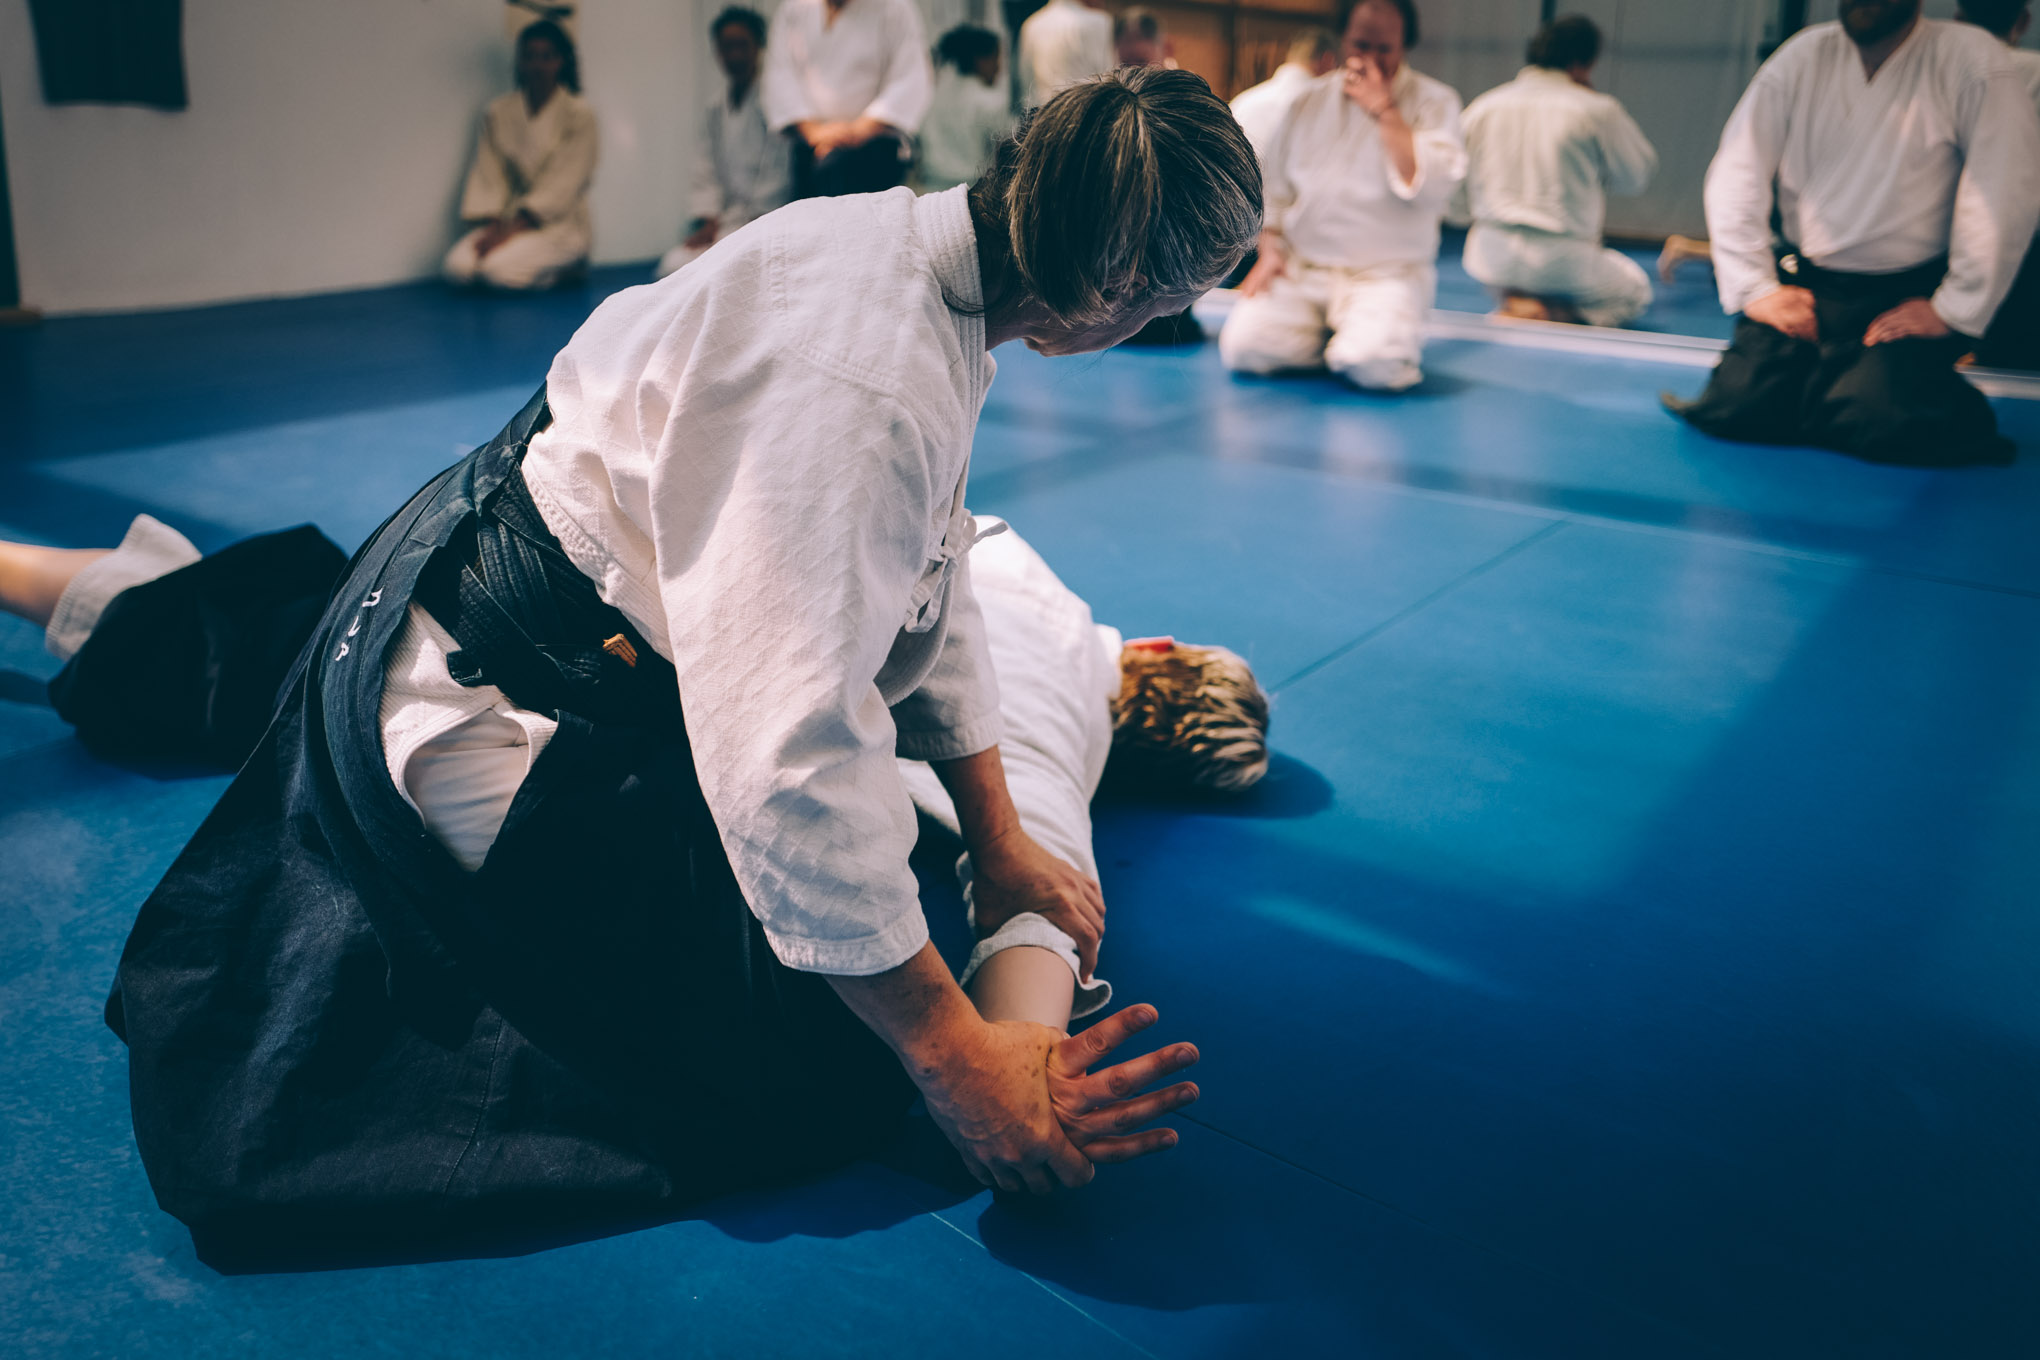 Claire Keller demonstrates the Aikido technique nikkyo at Bushwick Dojo in Brooklyn